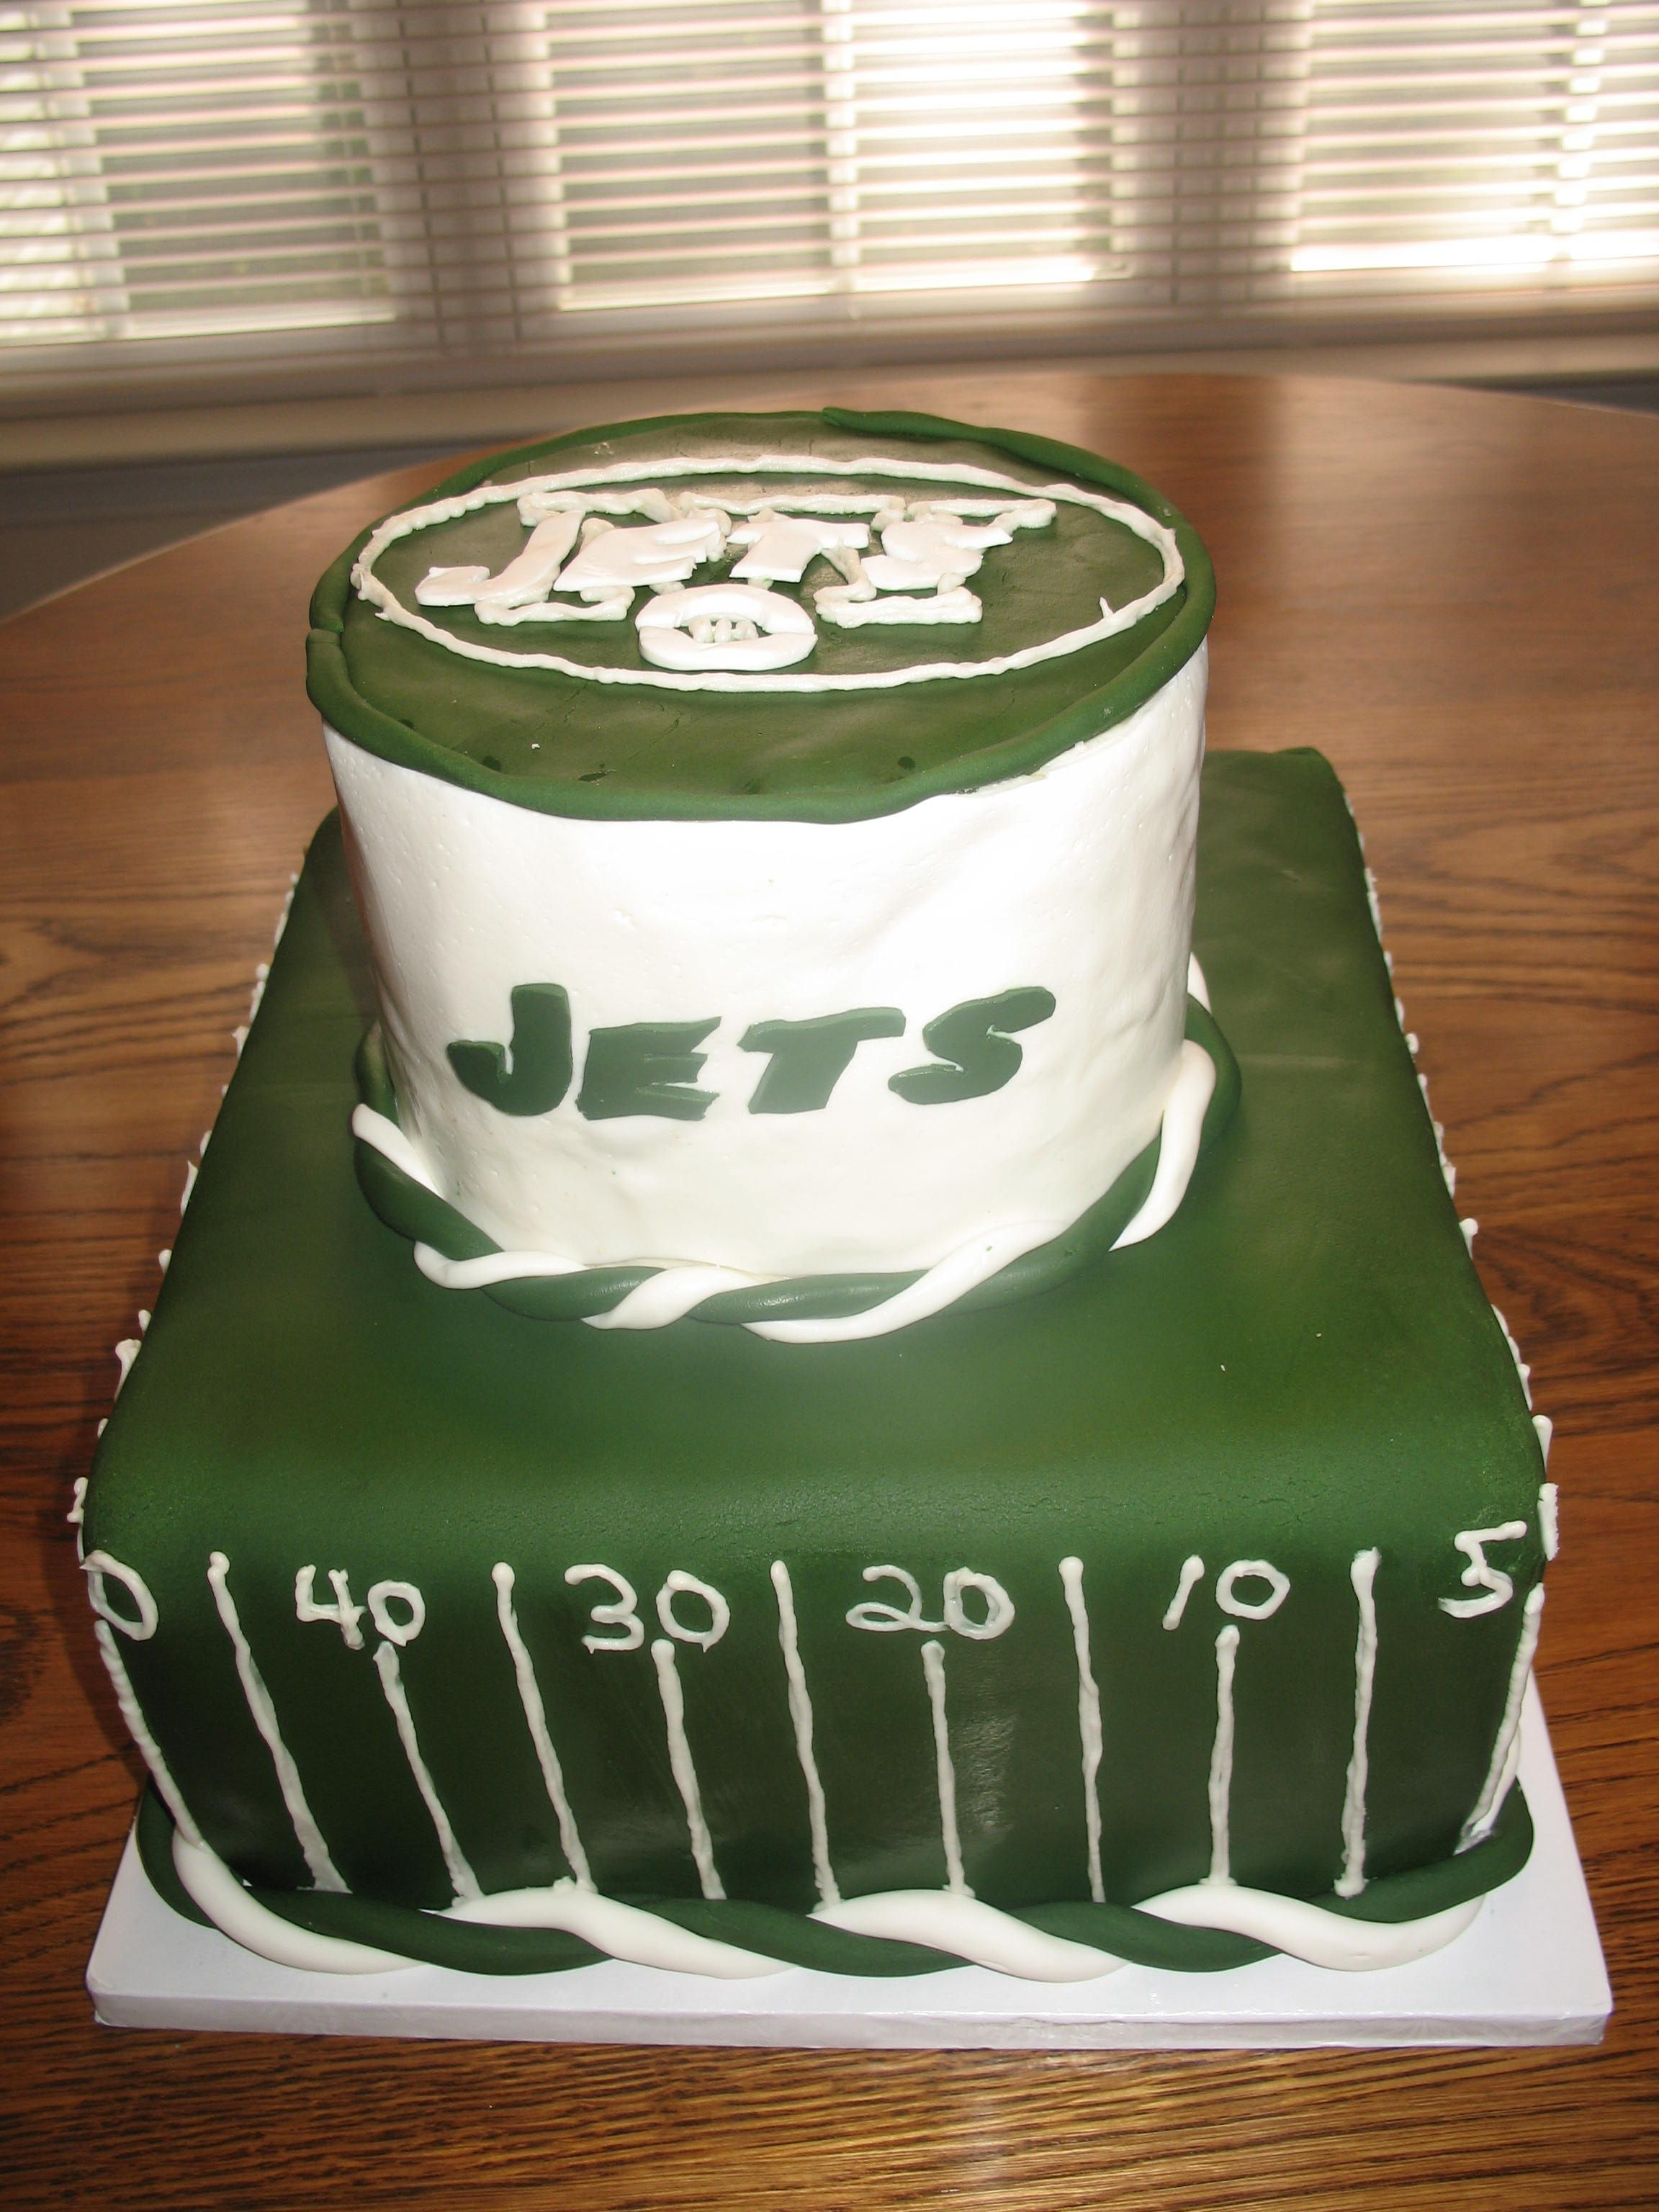 NY Jets Cake Cheesecakeetcbiz Wedding Cakes Charlotte NC